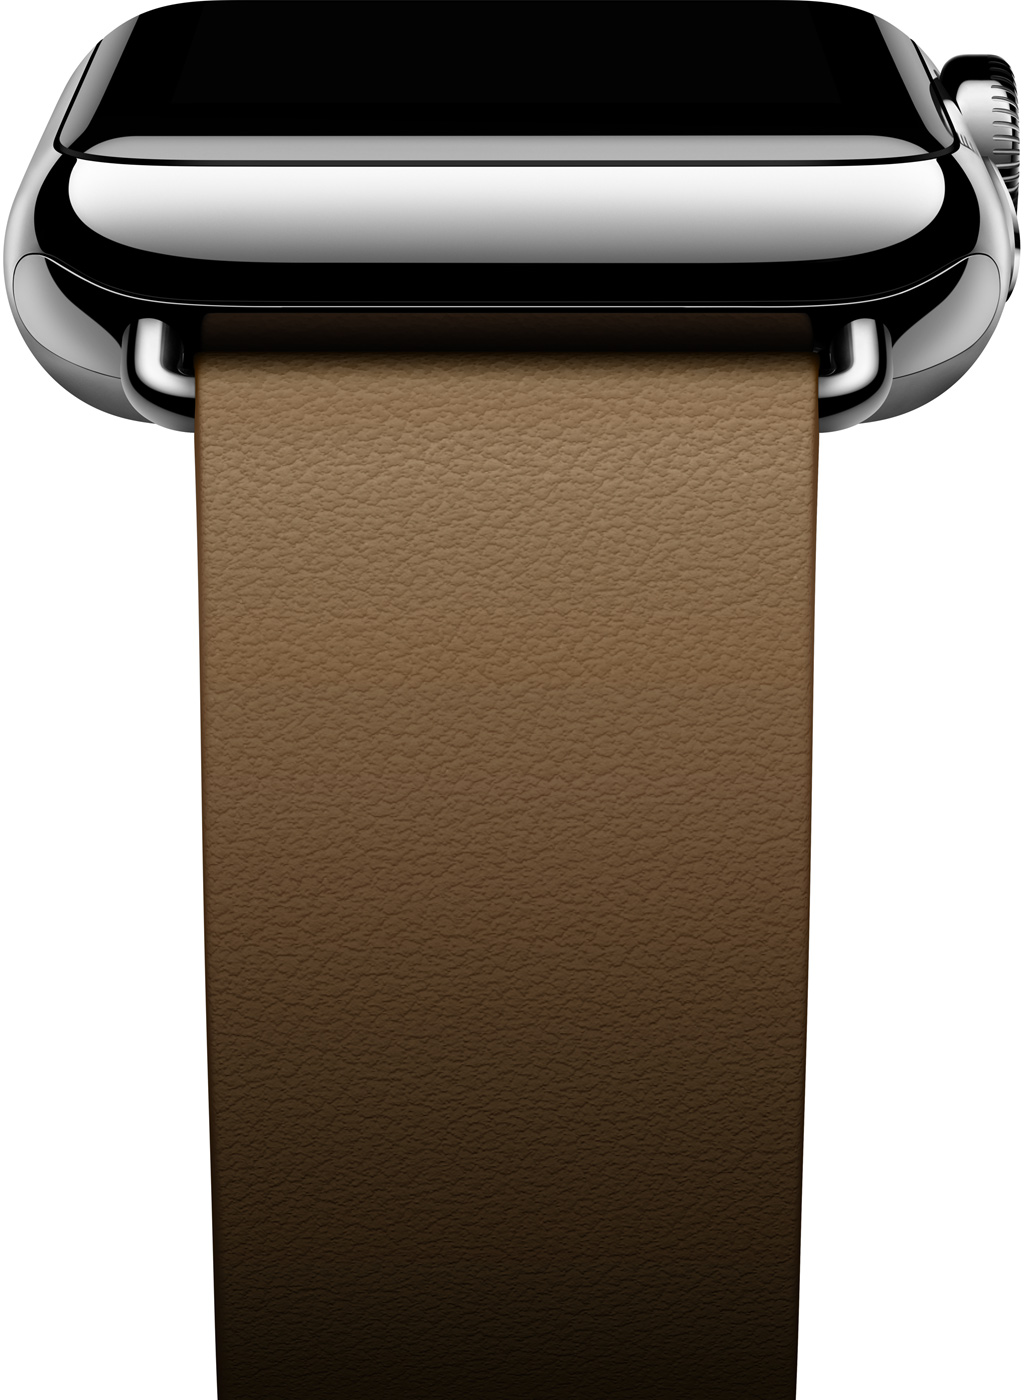 Official-Apple-Watch-images (22)